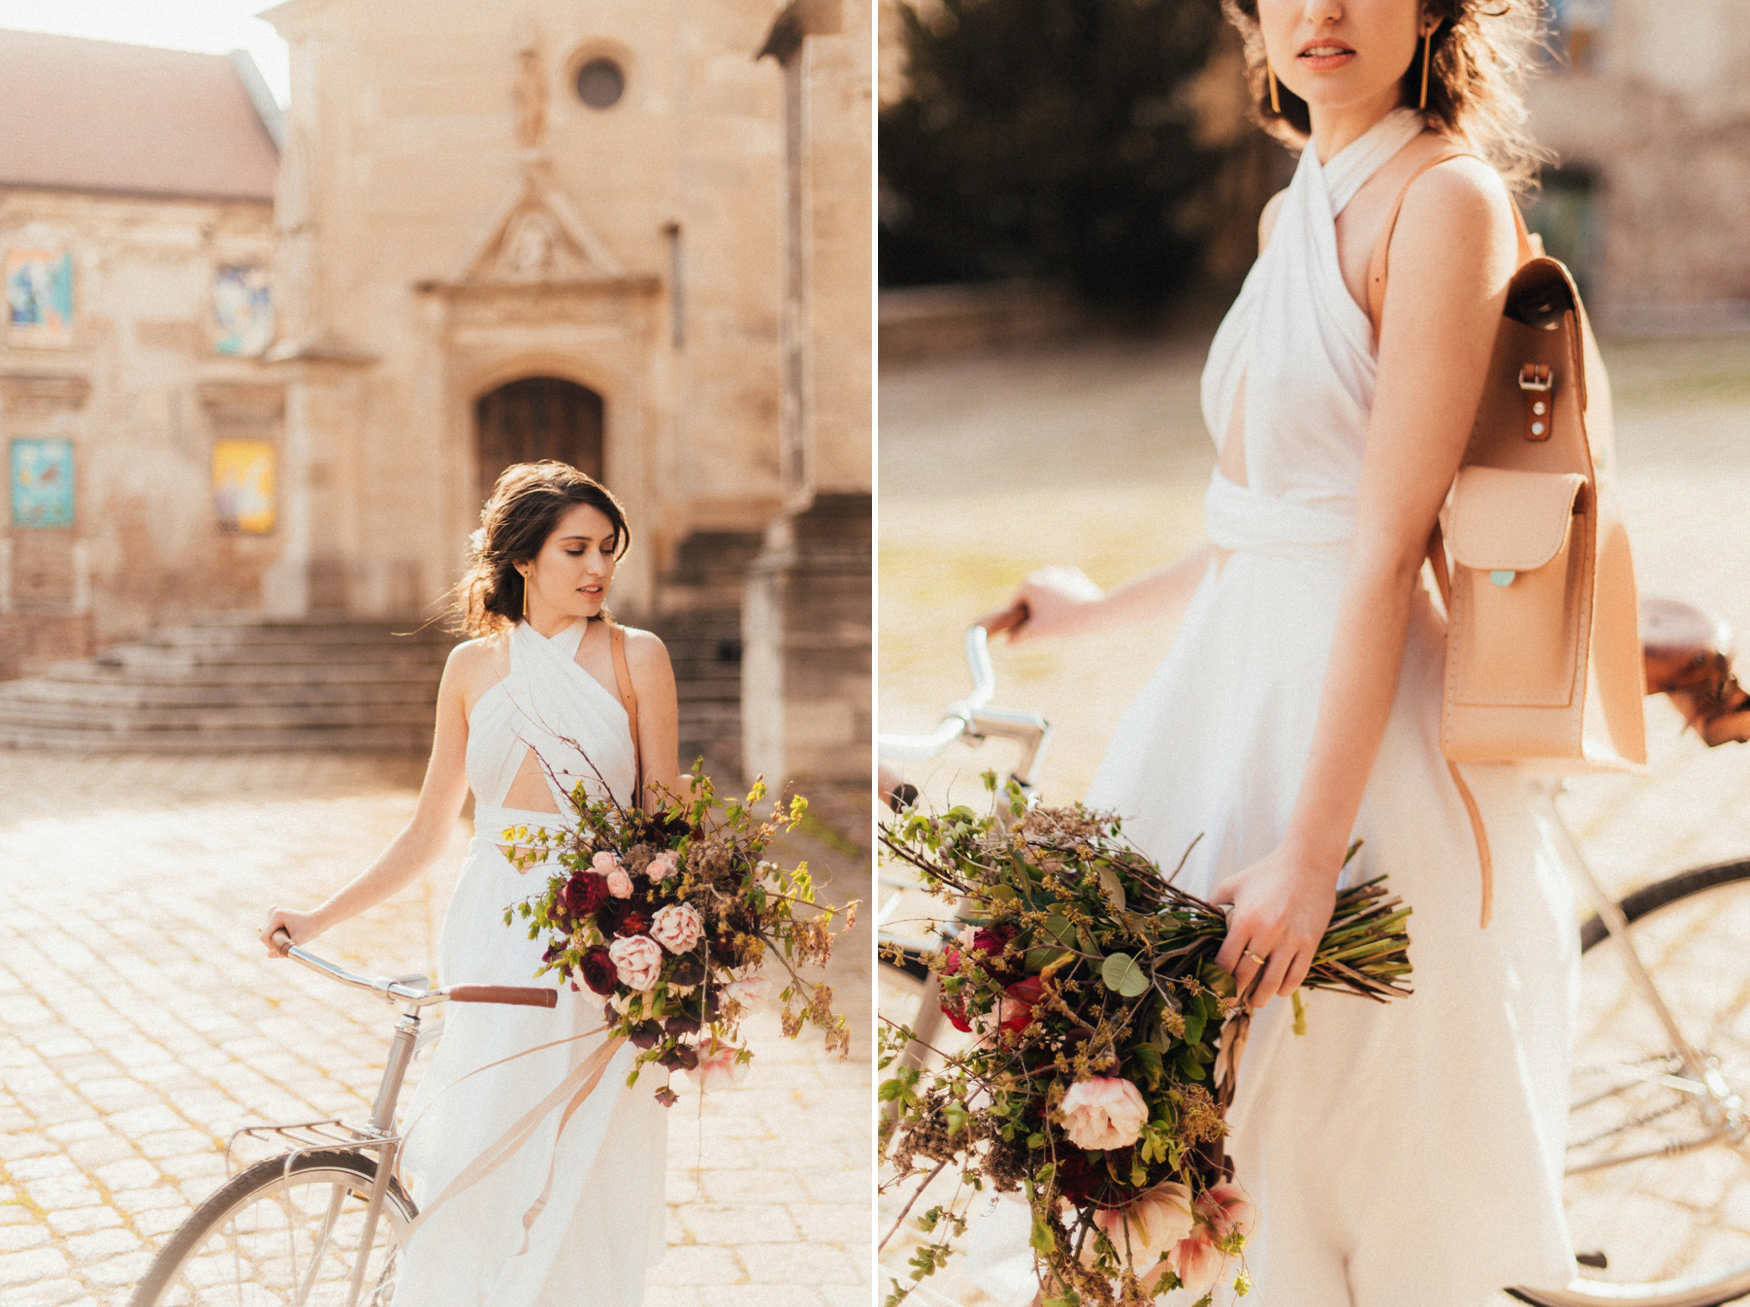 3 art deco inspired hipster wedding editorial bratislava 007.jpg